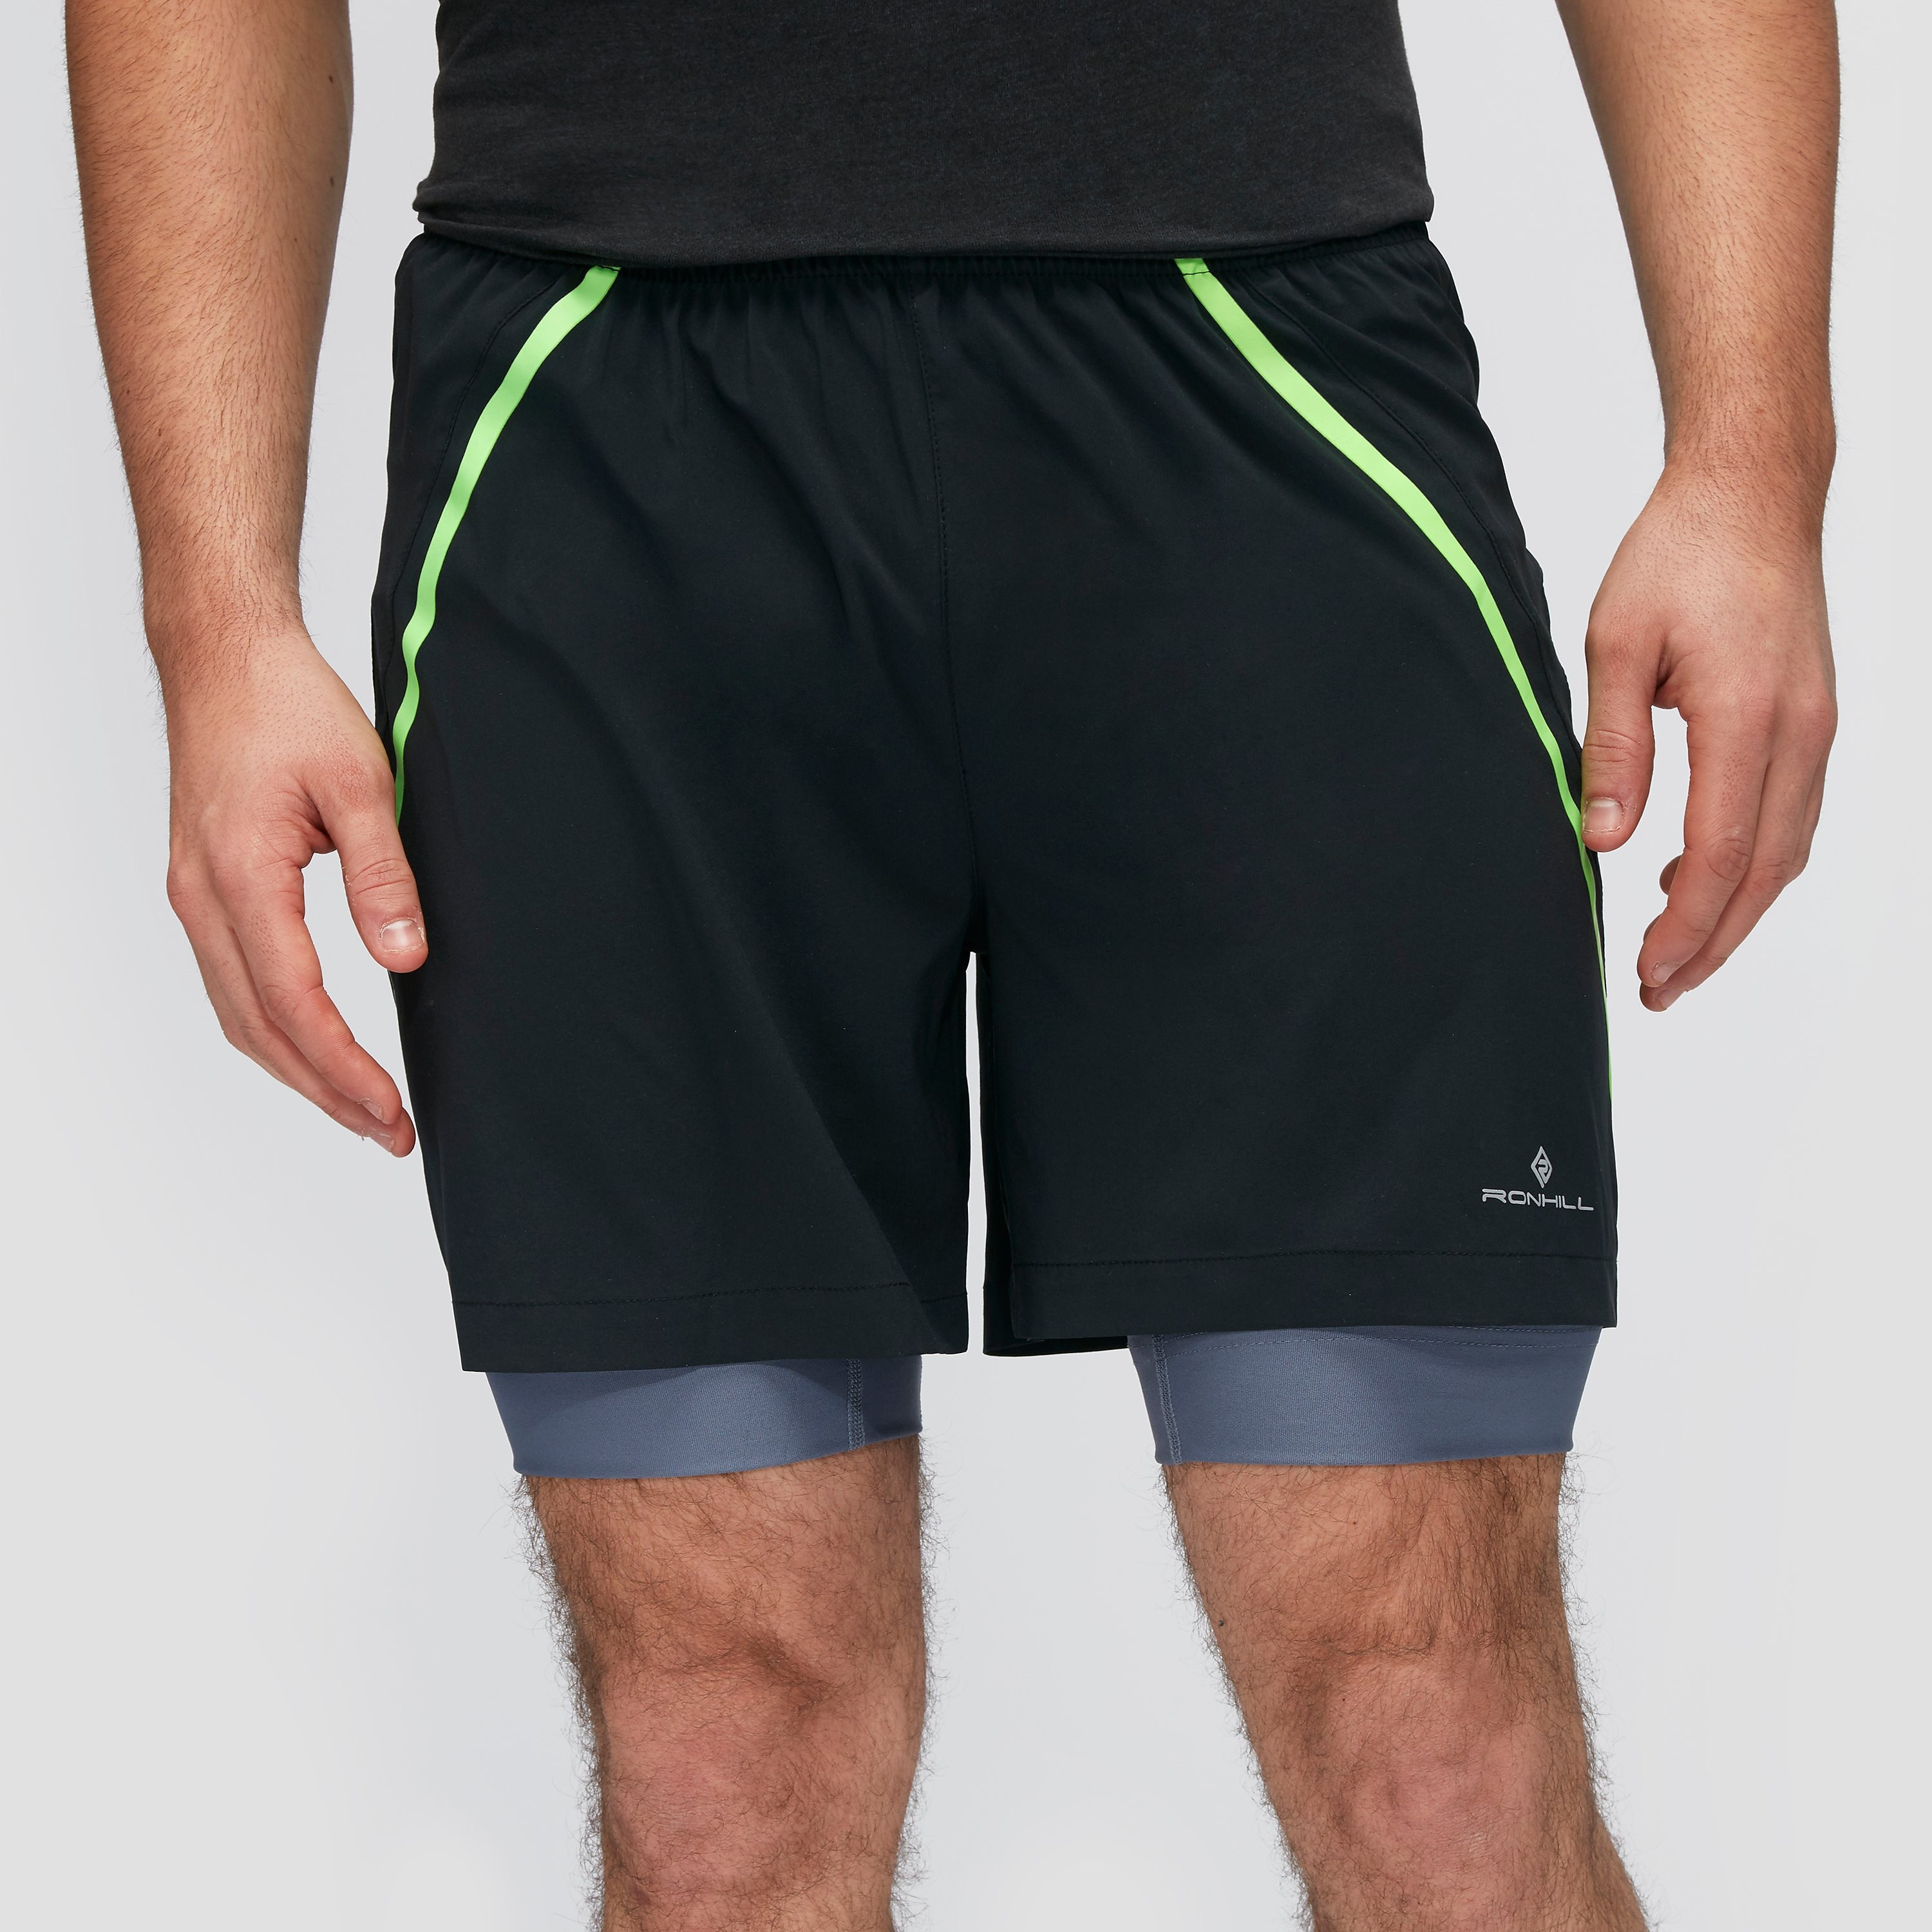 Ronhill Advance Twin 5 Inch Men's Short